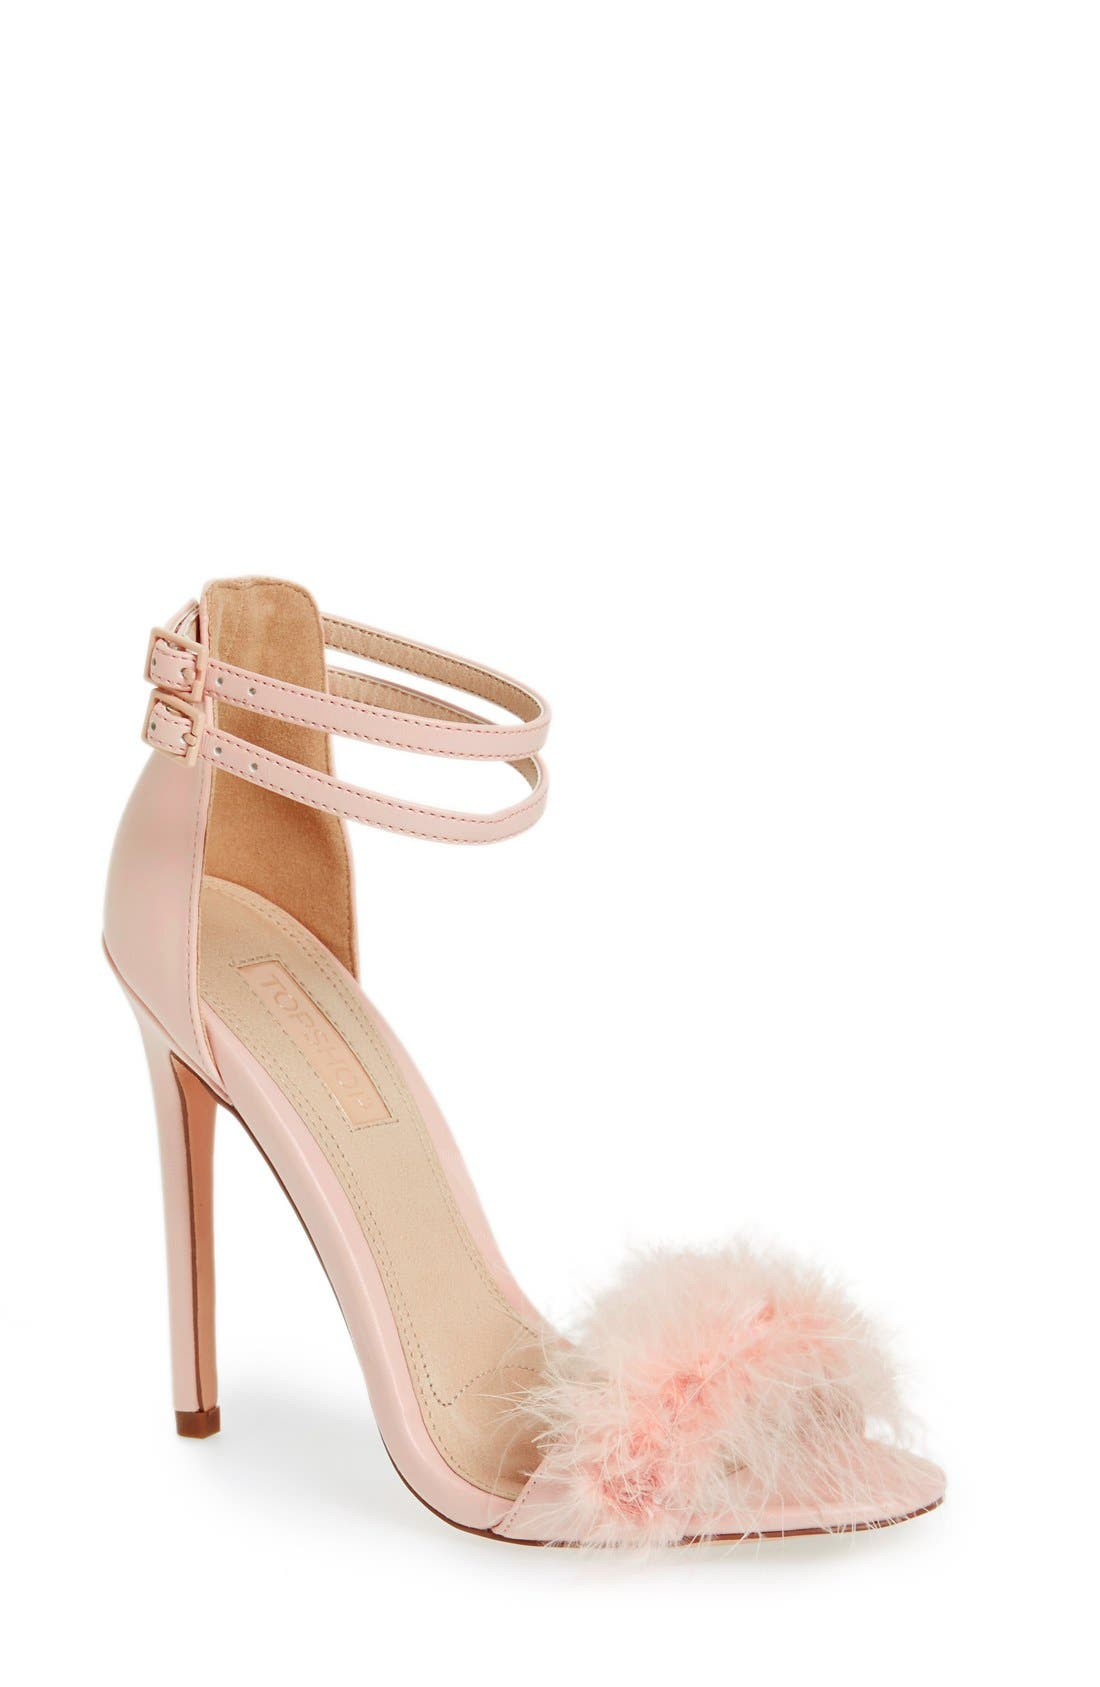 Alternate Image 1 Selected - Topshop 'Reese' Feather Sandal (Women)